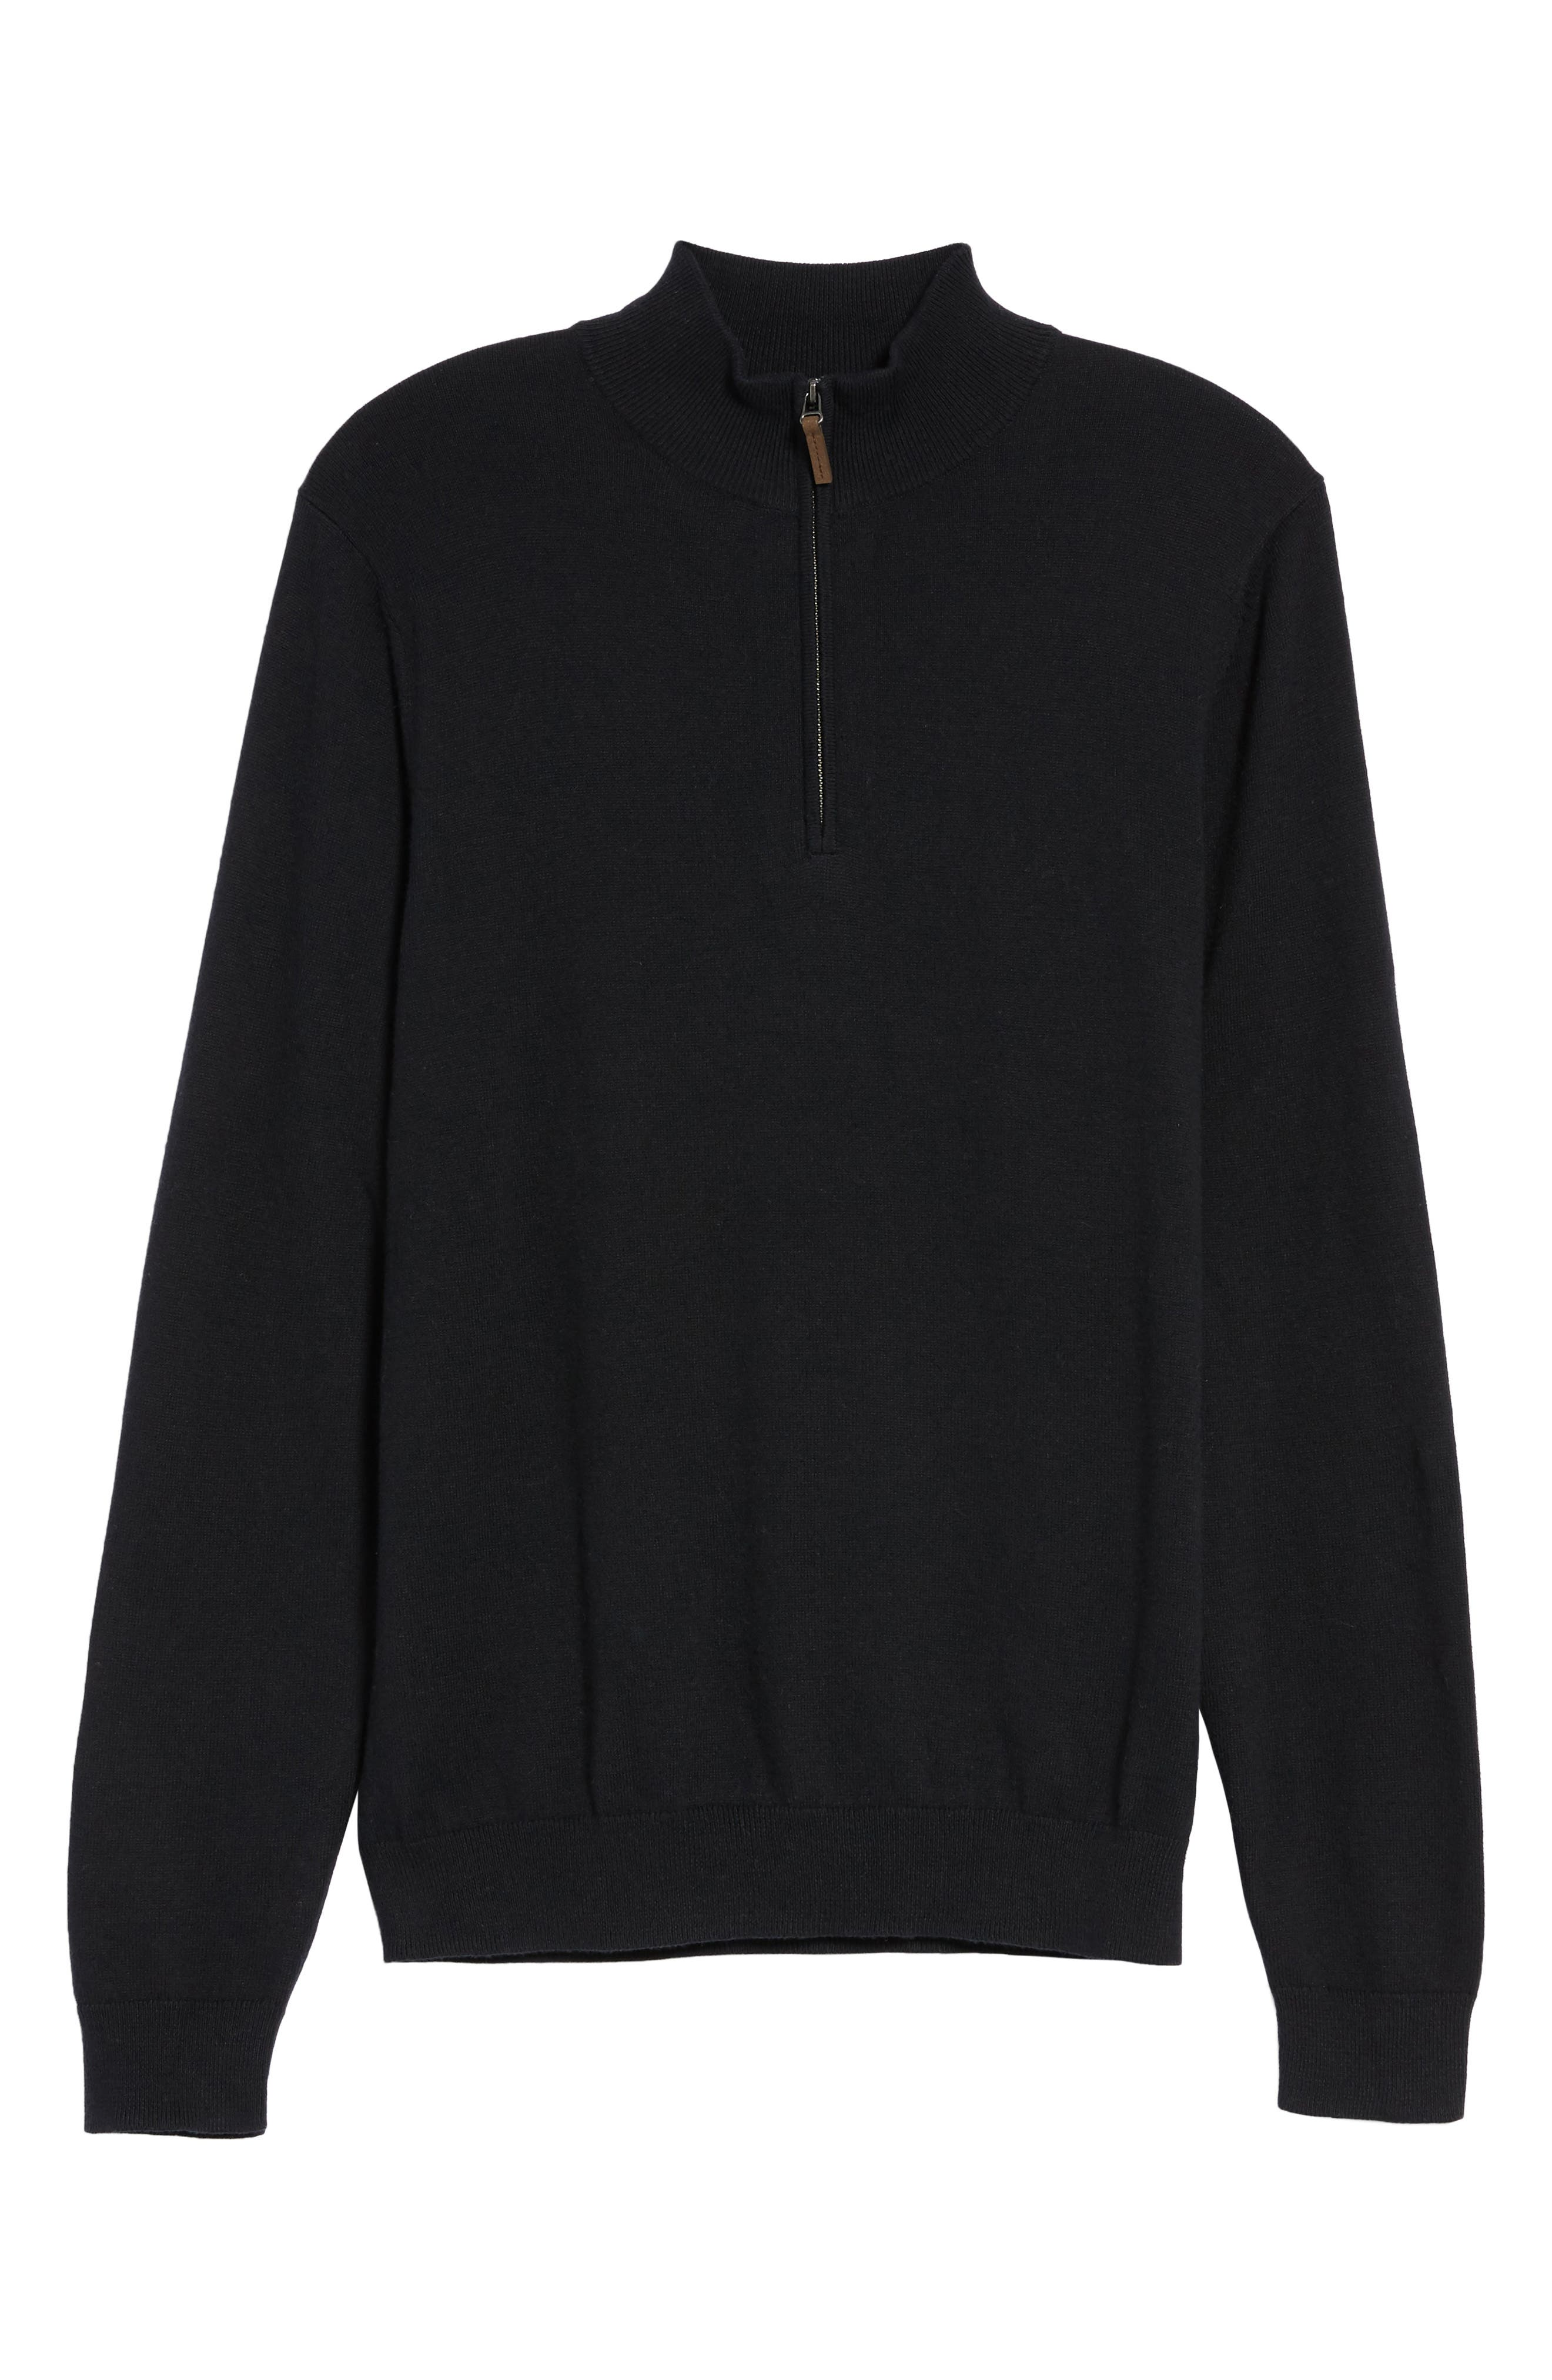 Half Zip Cotton & Cashmere Pullover,                             Alternate thumbnail 2, color,                             Black Caviar